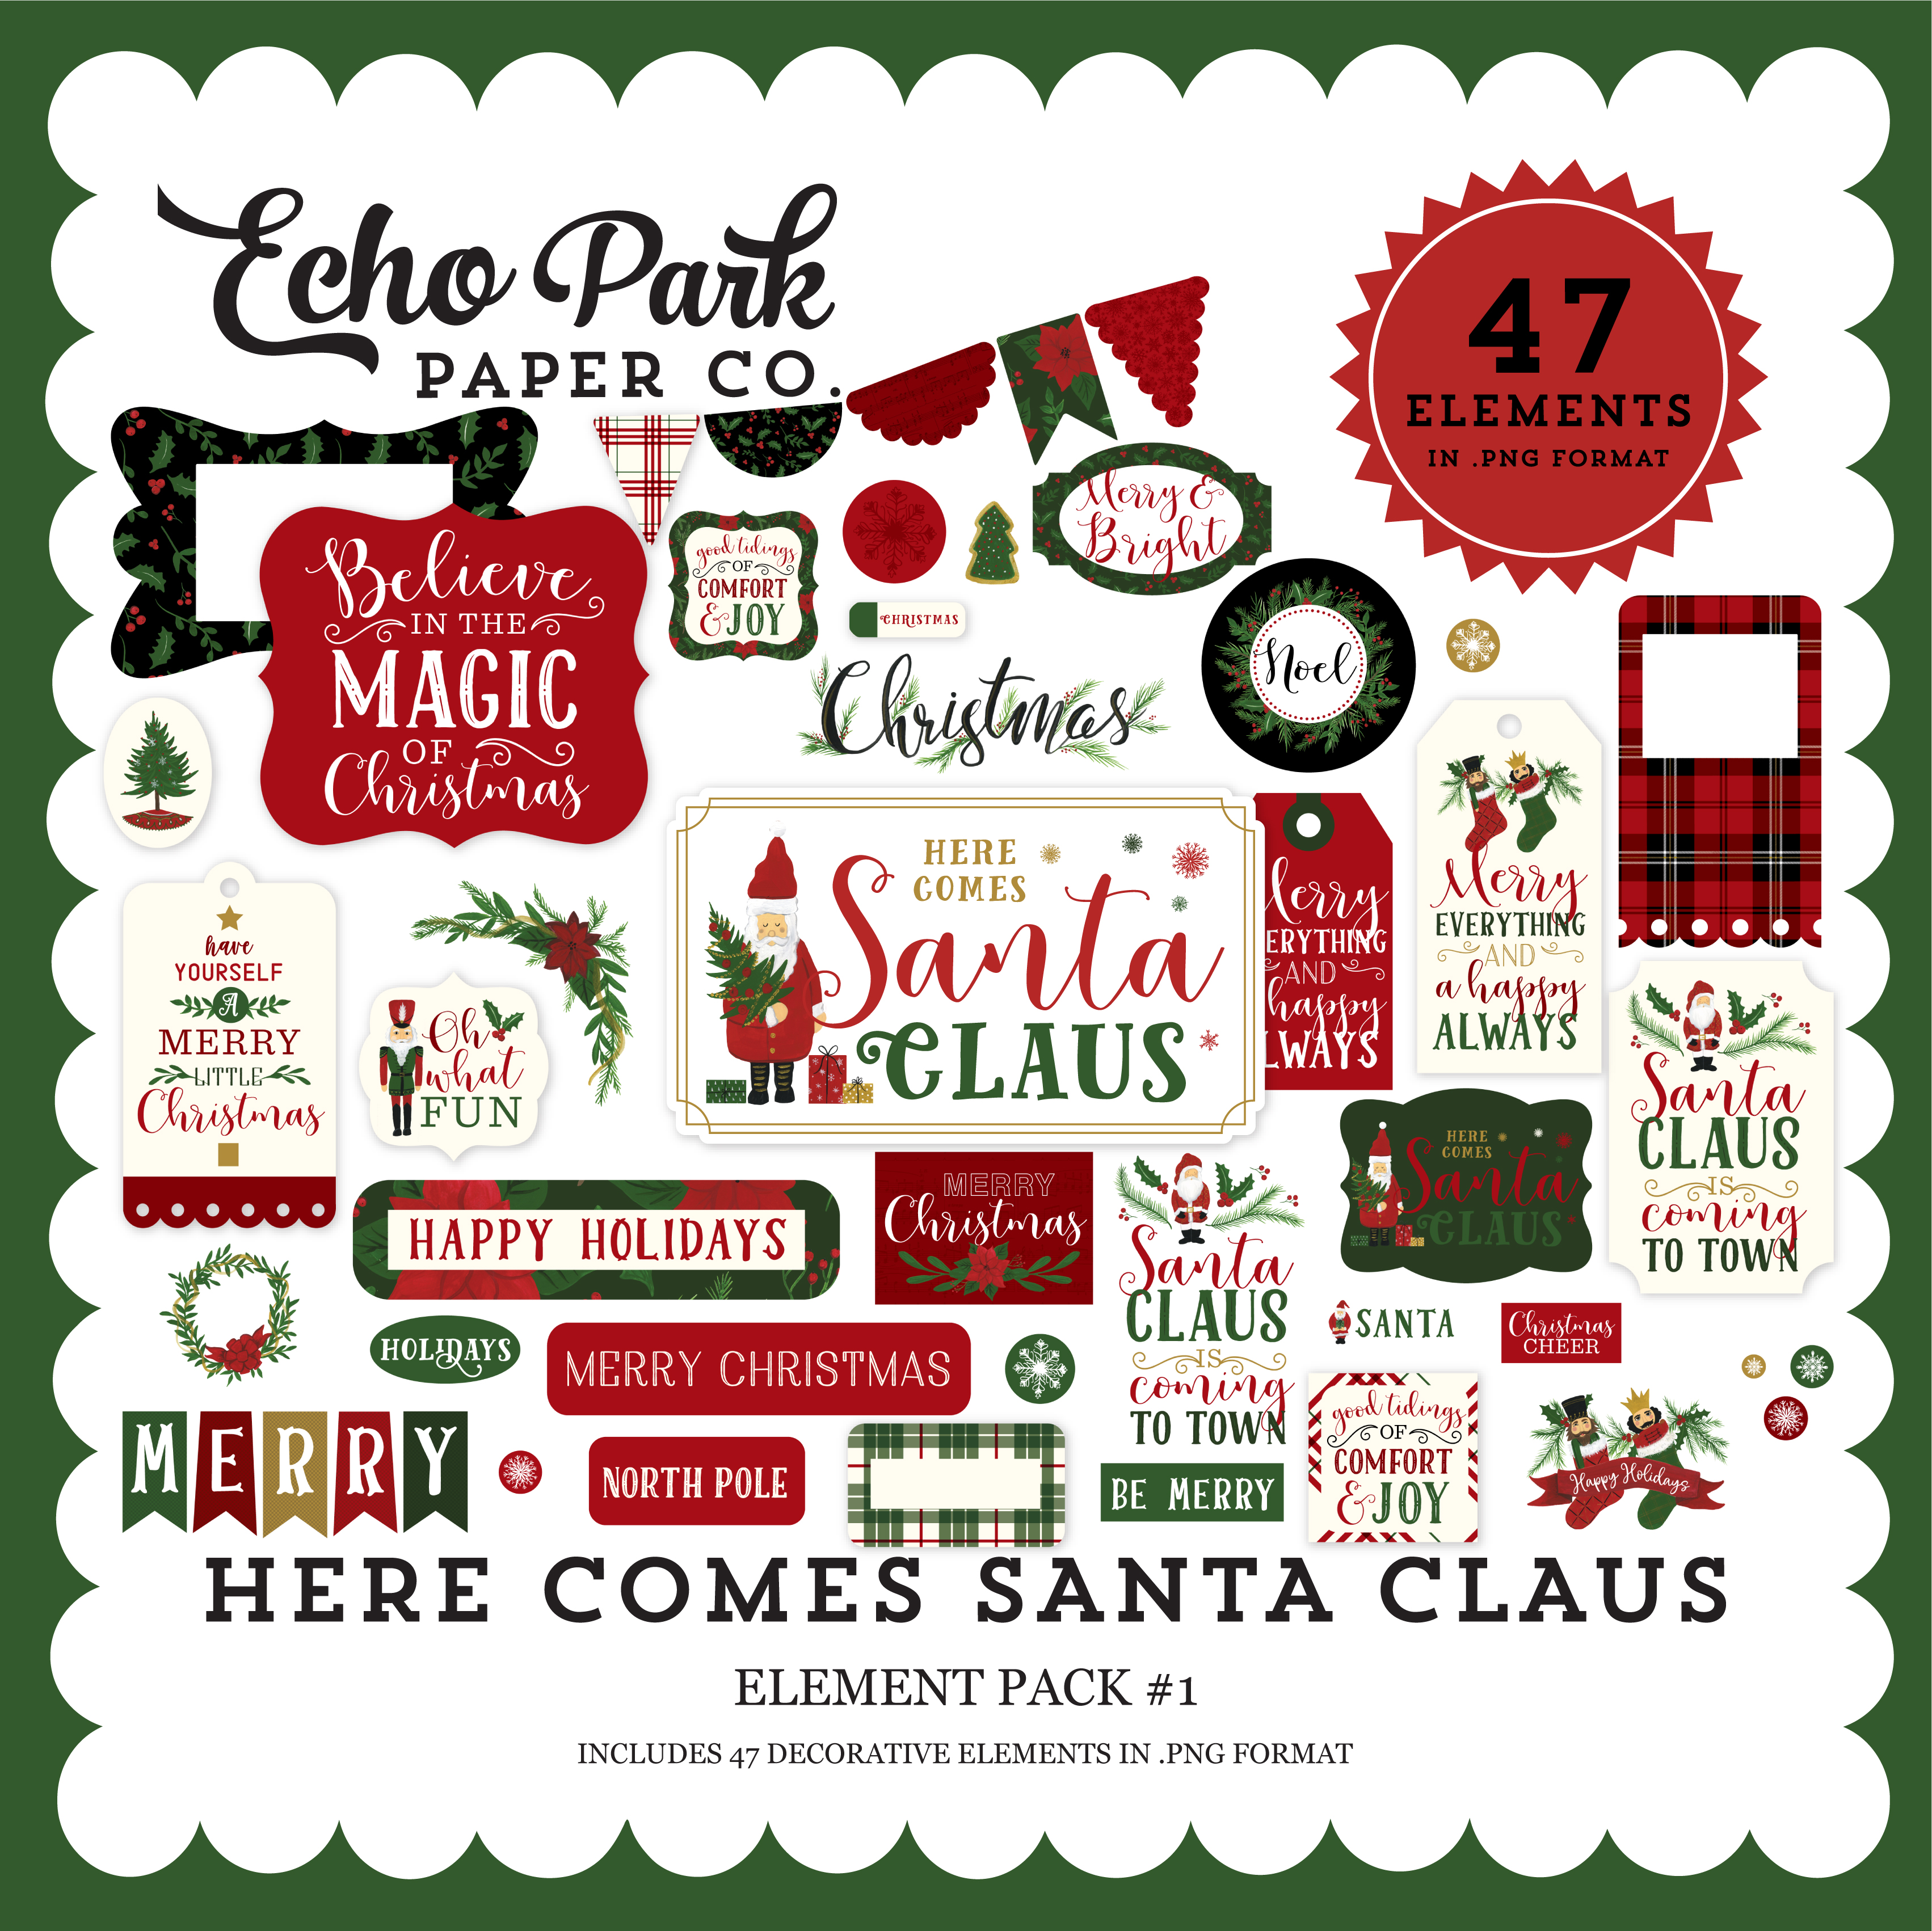 Here Comes Santa Claus Element Pack #1